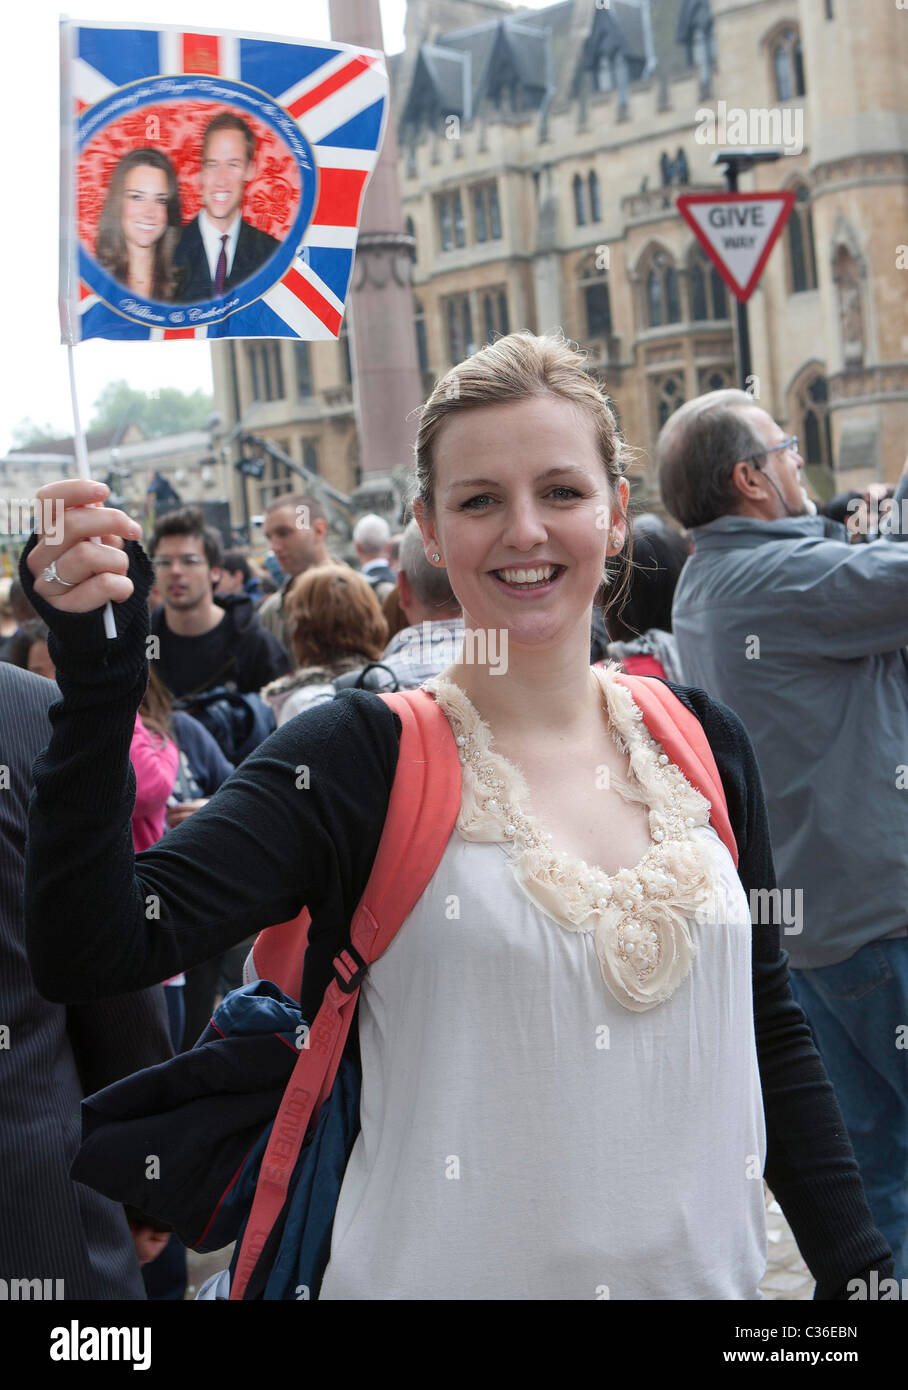 The Wedding of Prince William and Catherine Middleton. 29th April 2011  Crowds gather in London to celebrate the - Stock Image